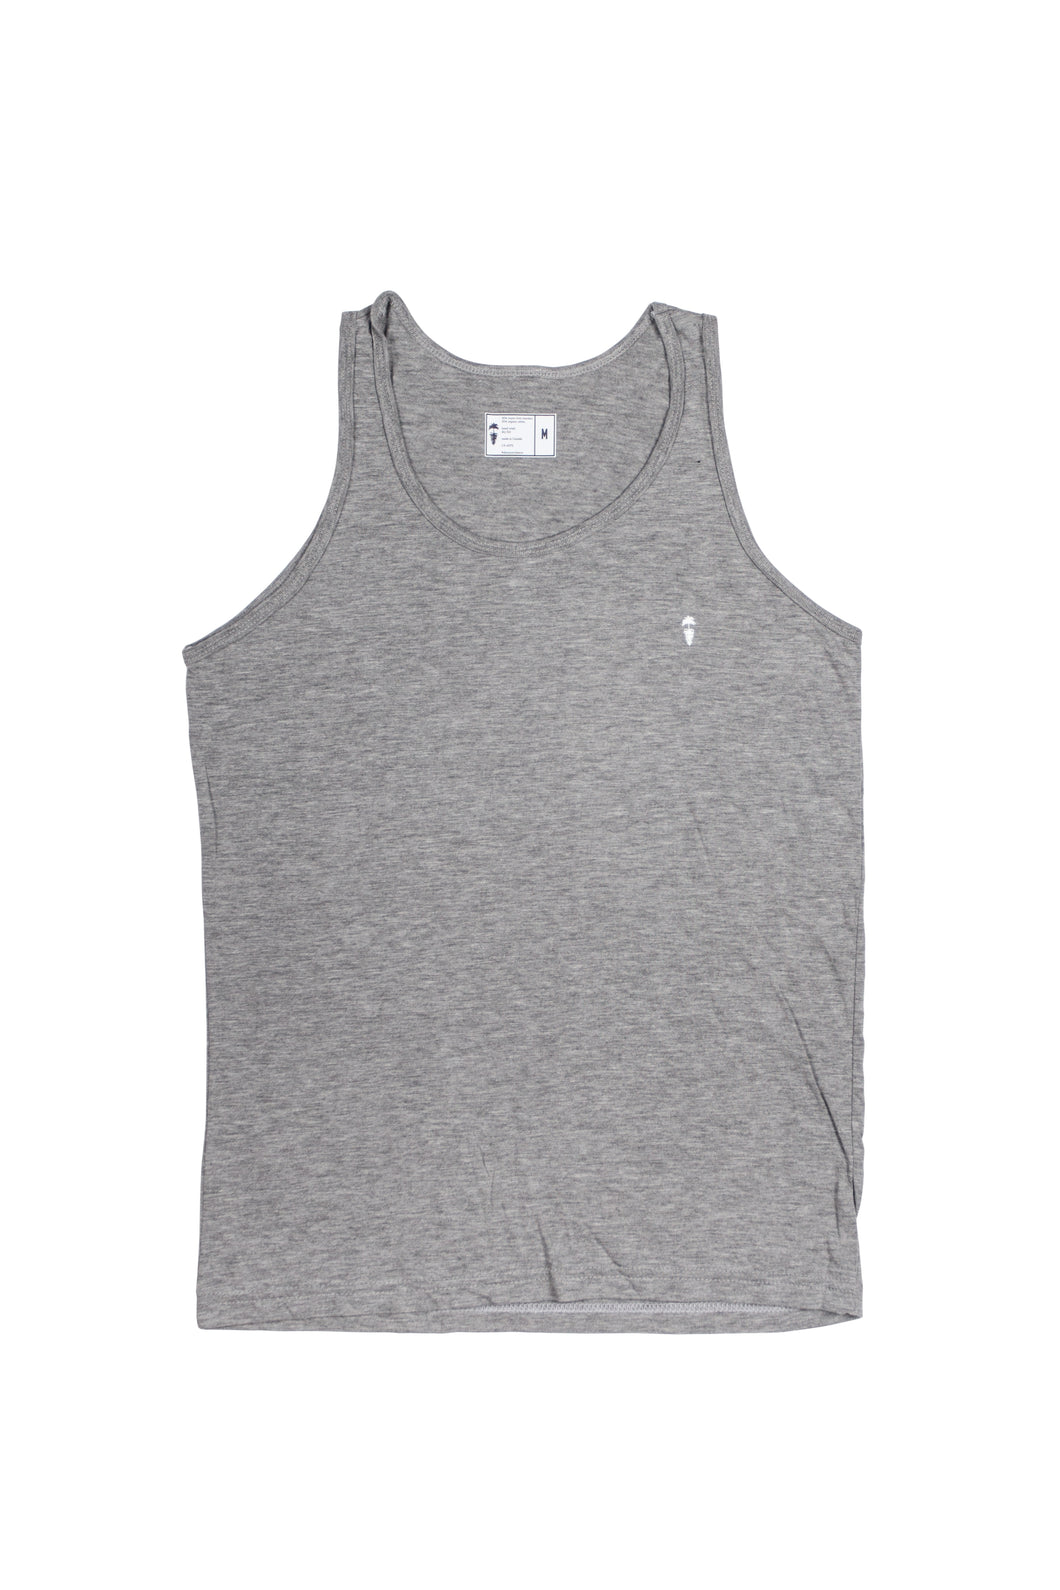 Grey surf tank top with palm to pine logo